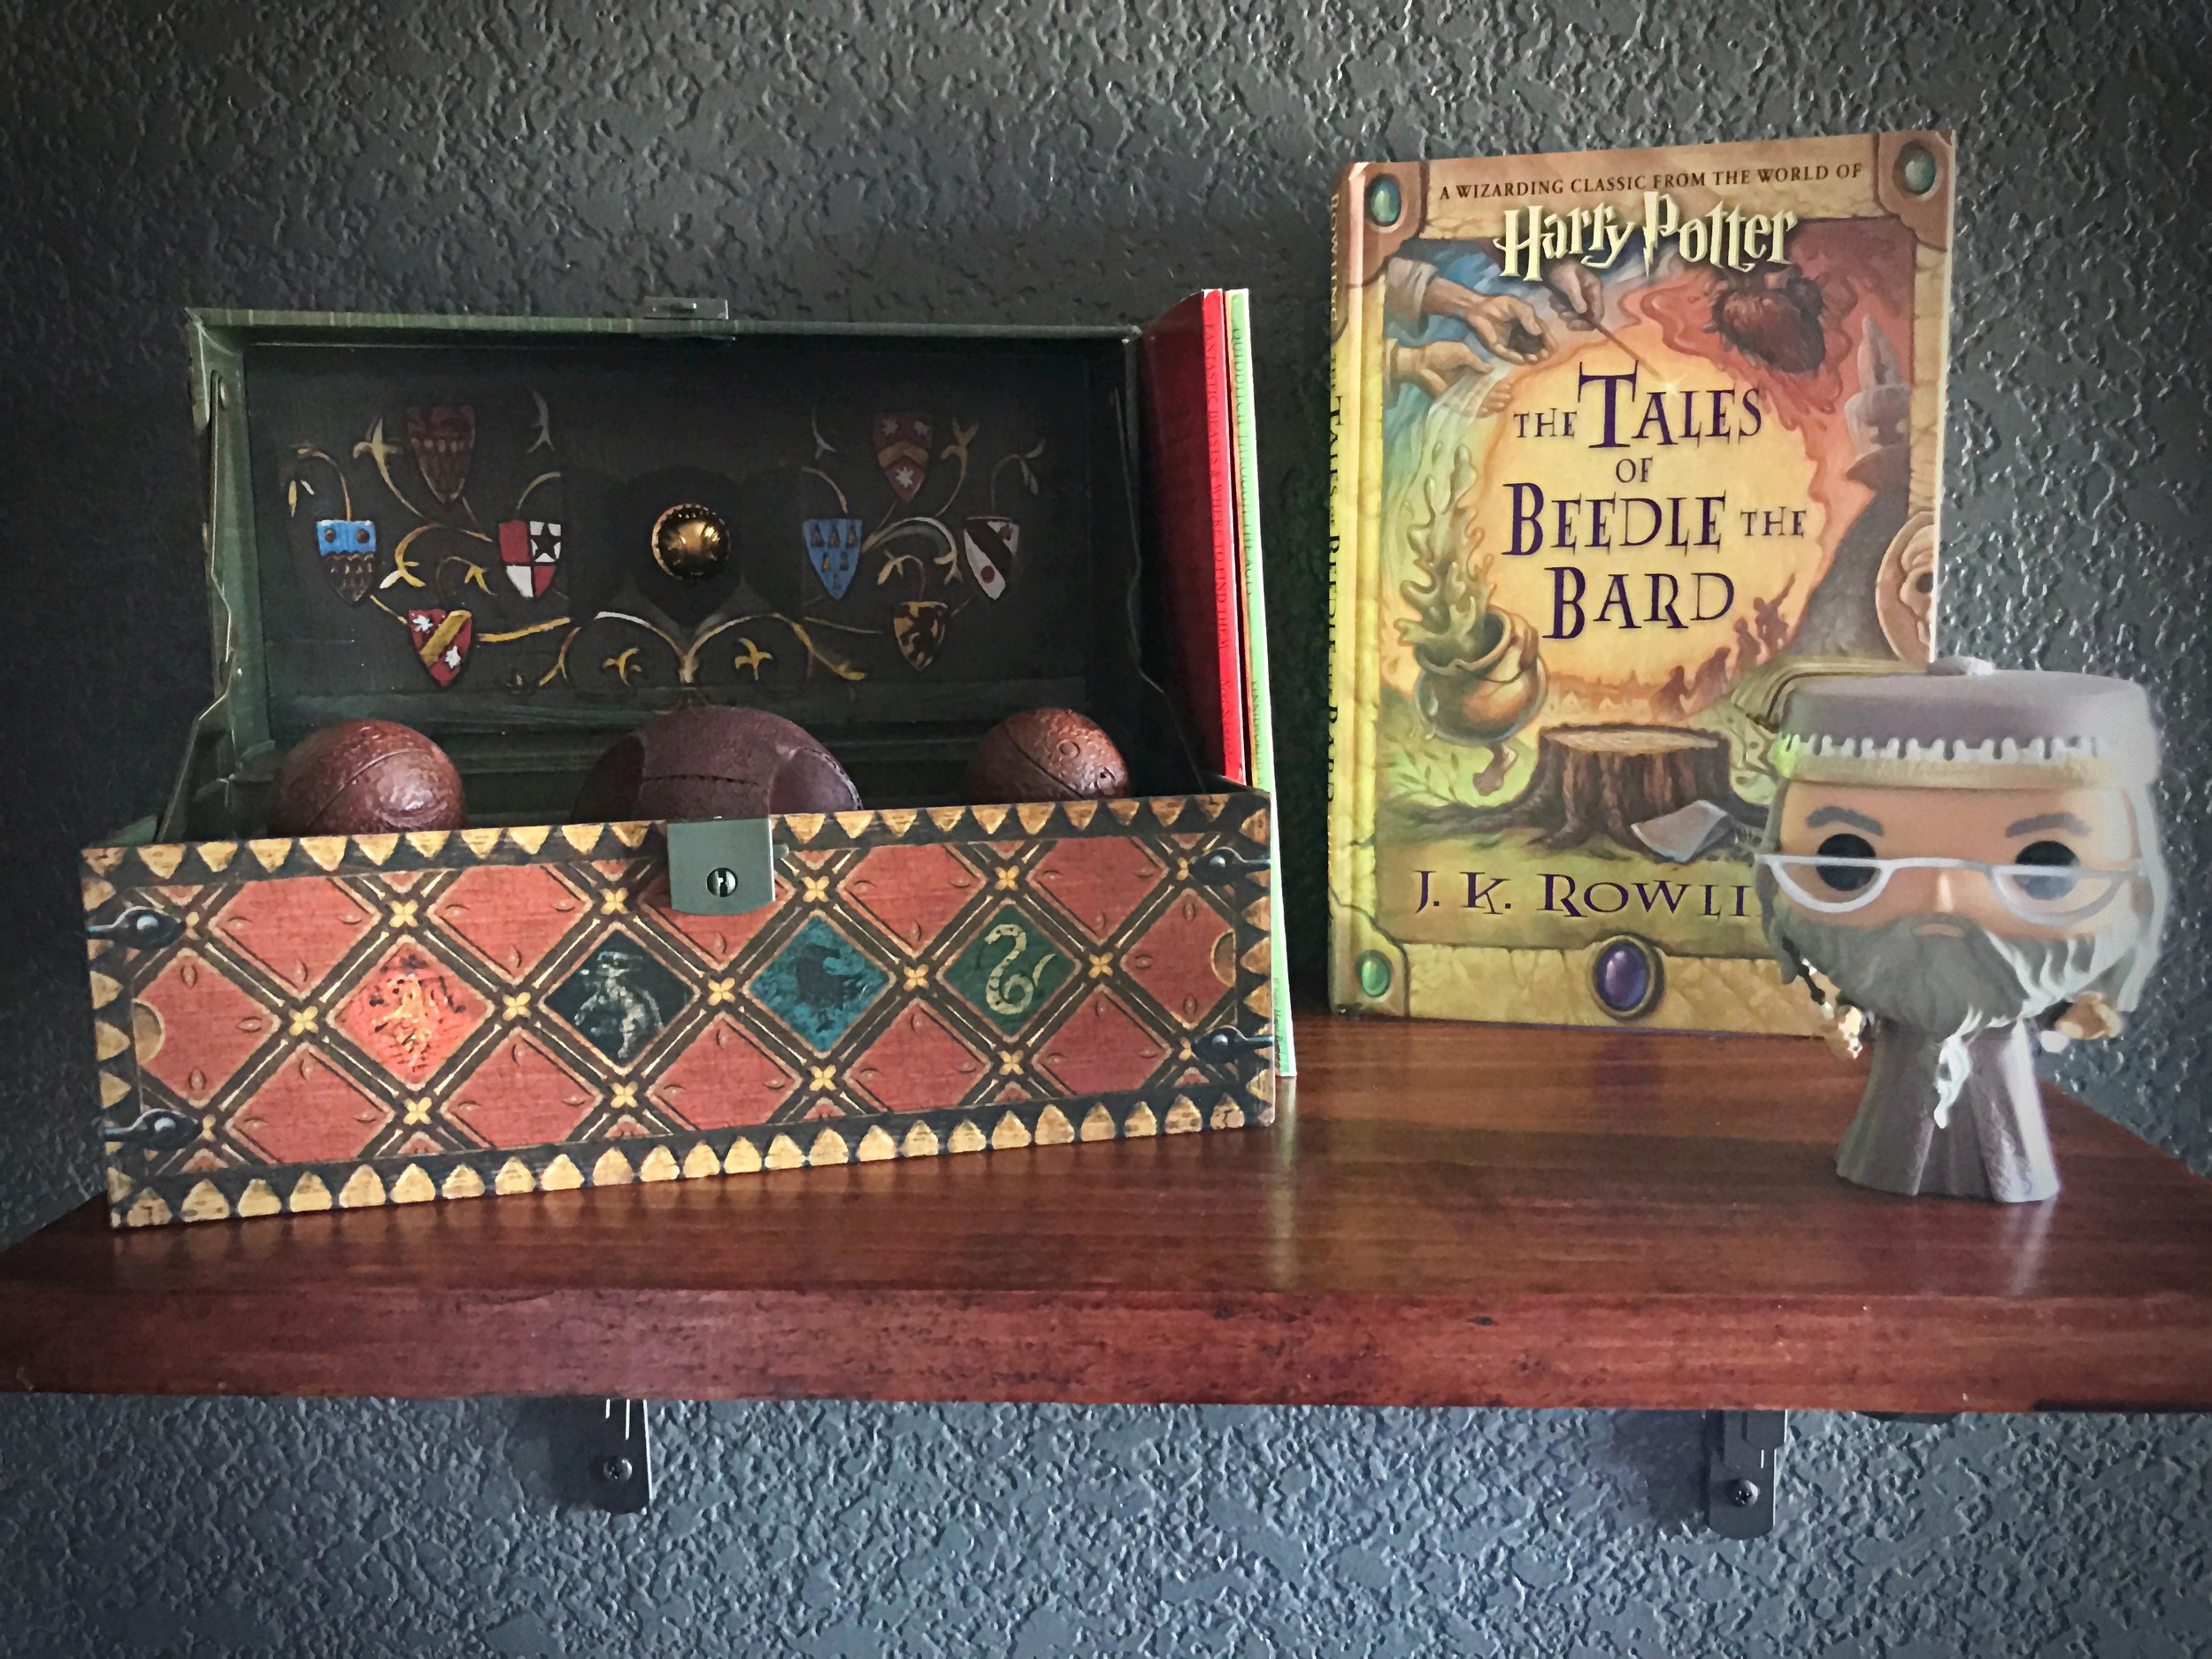 Harry Potter Toddler Room - Dumbledore Quidditch Beedle the Bard